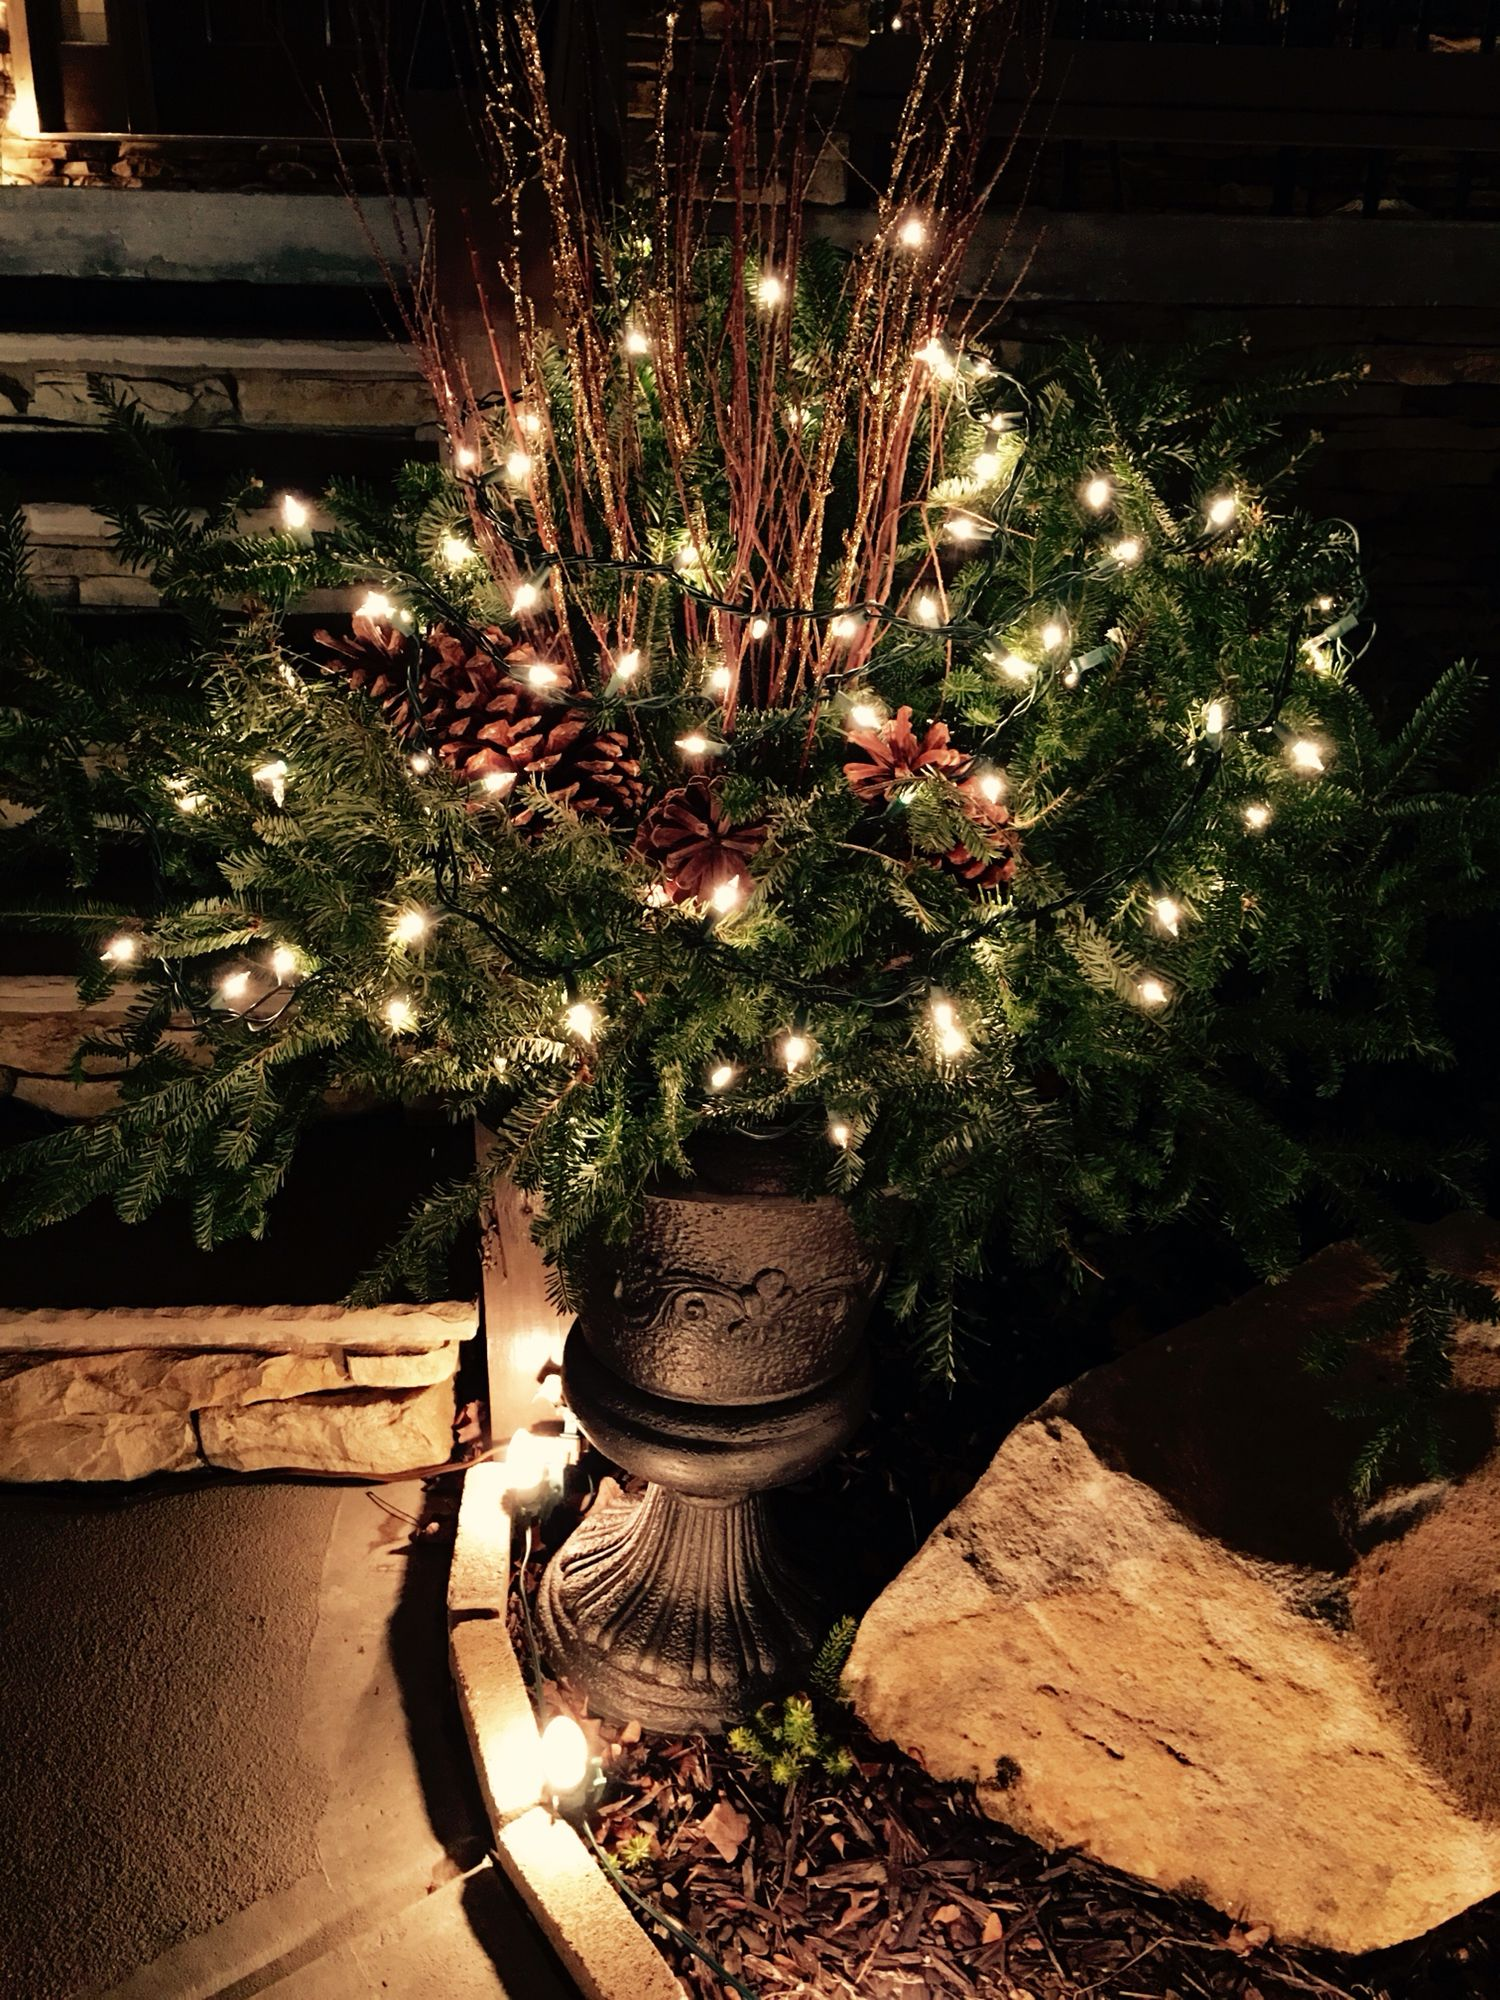 Inspirations Cozy Lowes Linoleum Flooring For Classy: Created A Outdoor Christmas Arrangement With Christmas